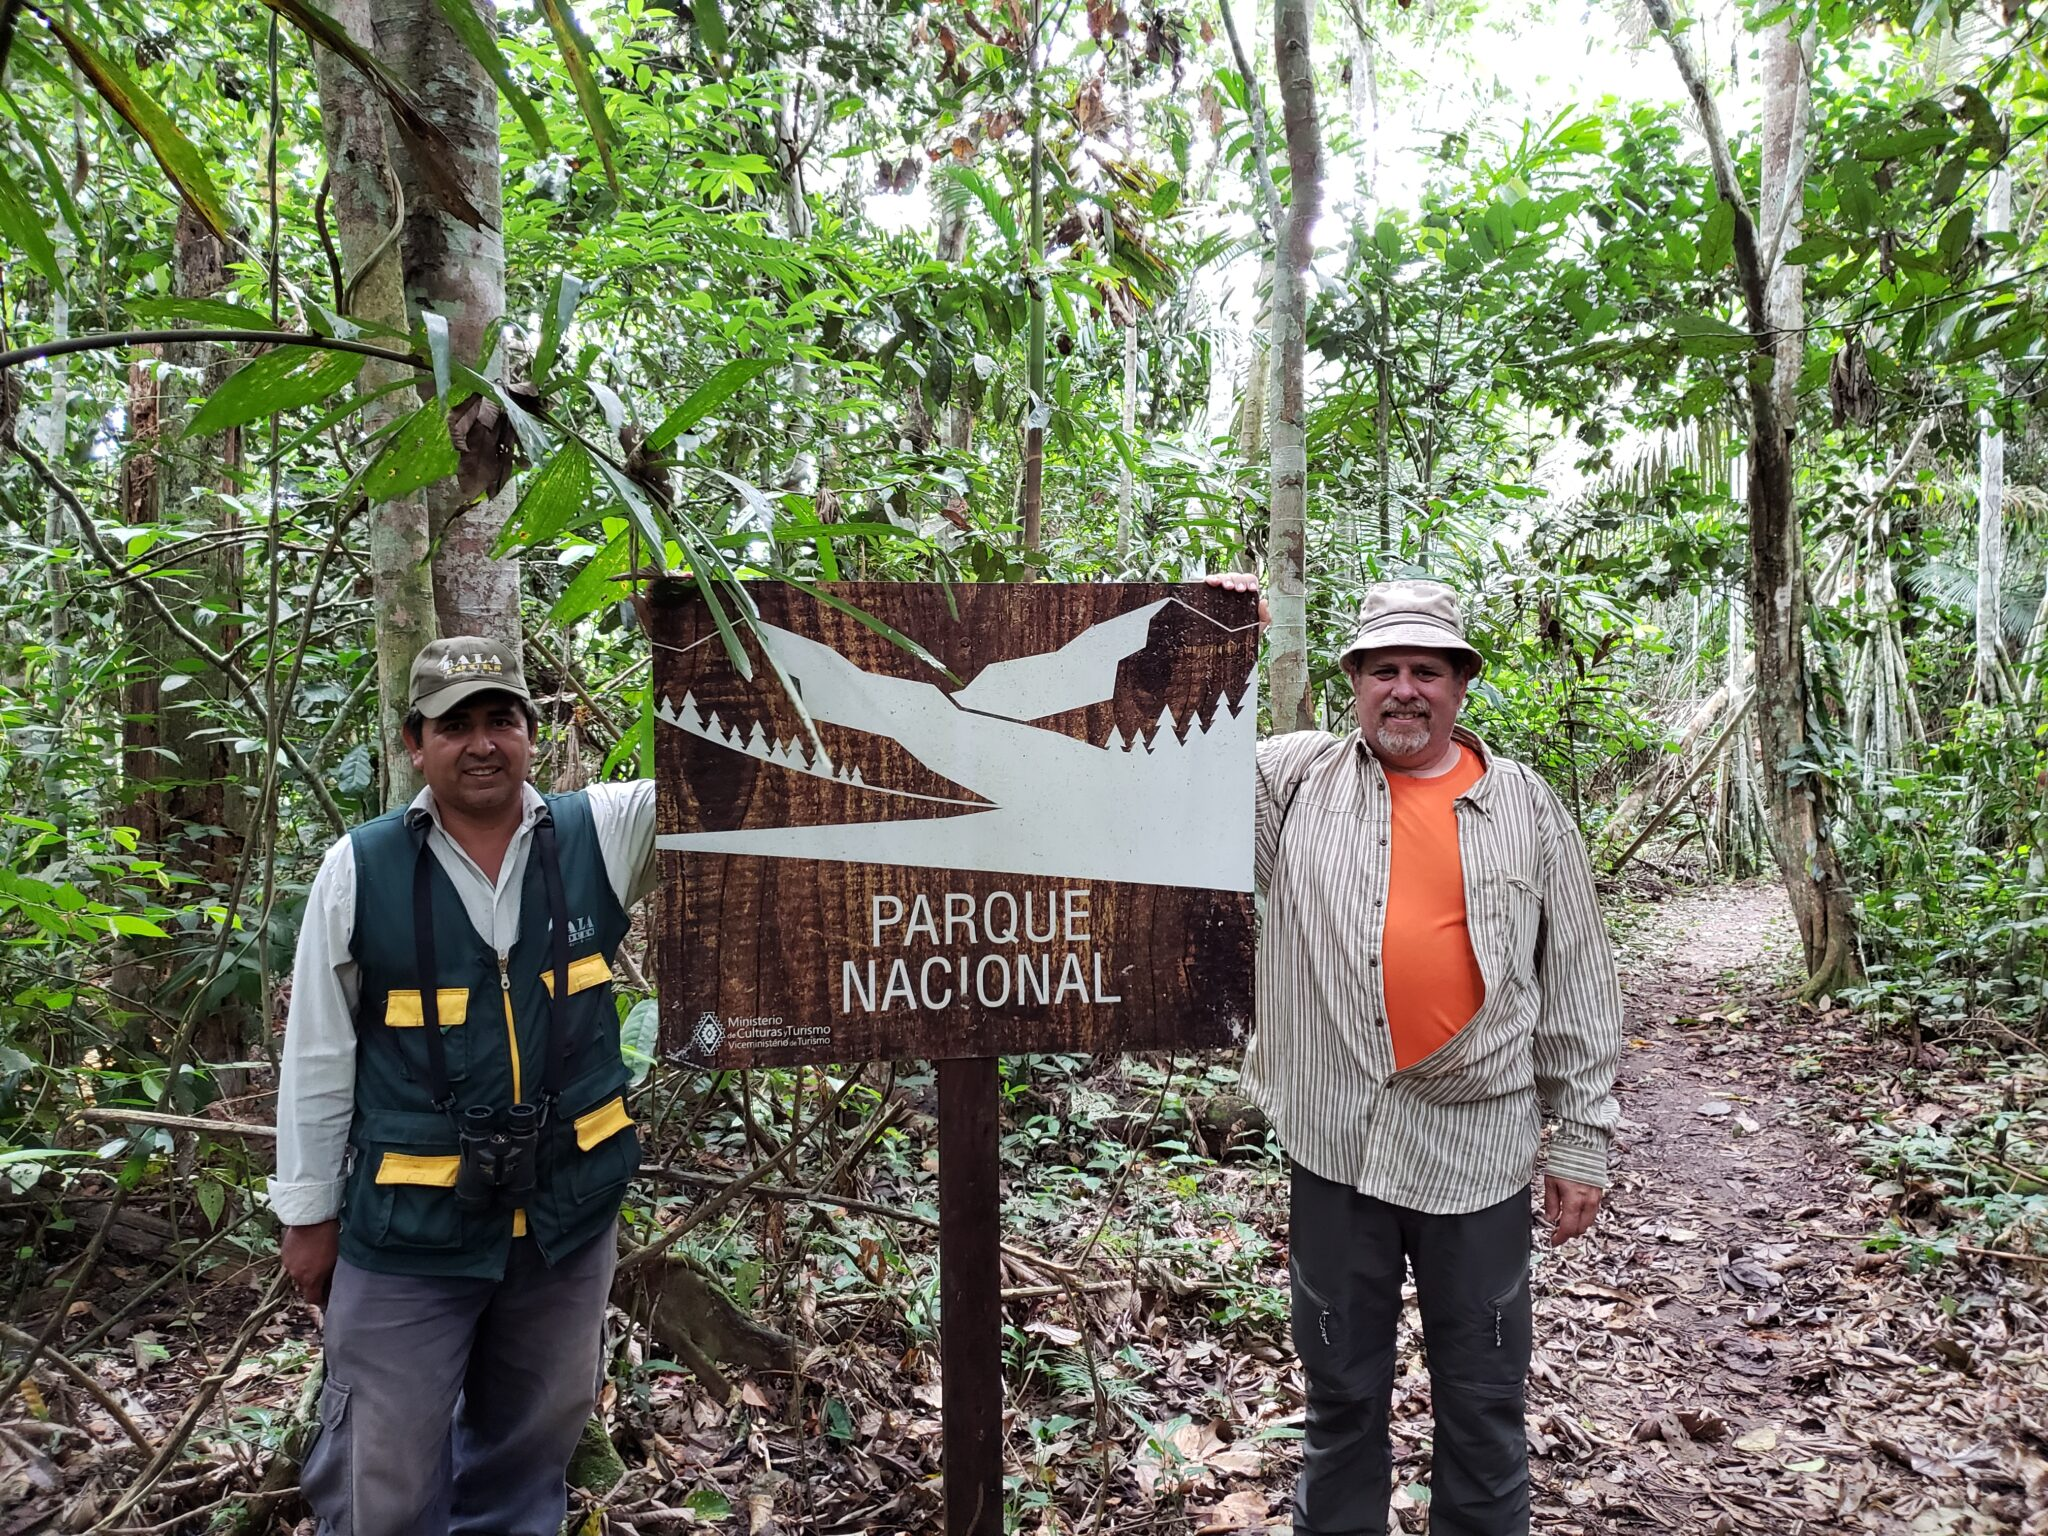 Amazon jungle Parque Nacional entrance sign